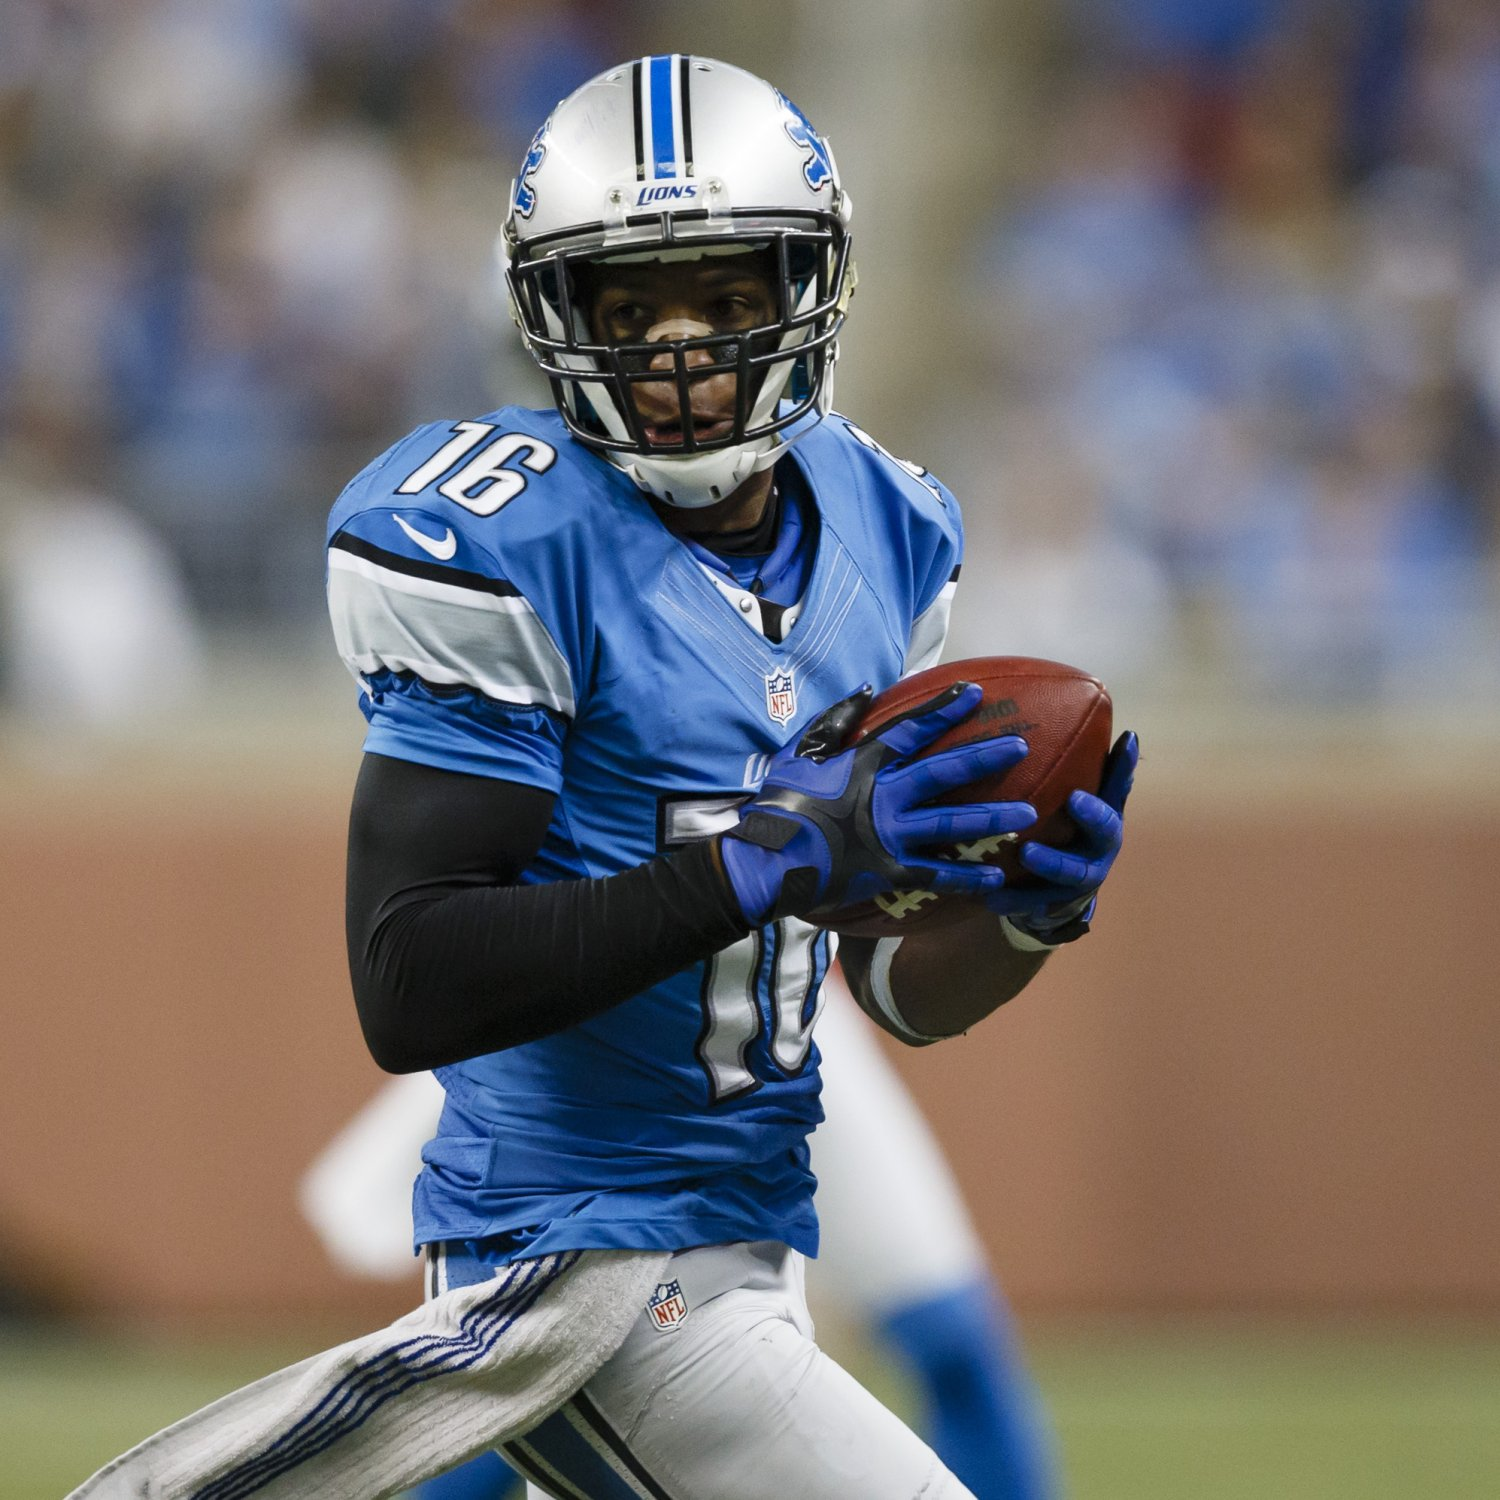 Former Broncos Player Arrested: Titus Young Reportedly Arrested For Assault With Deadly